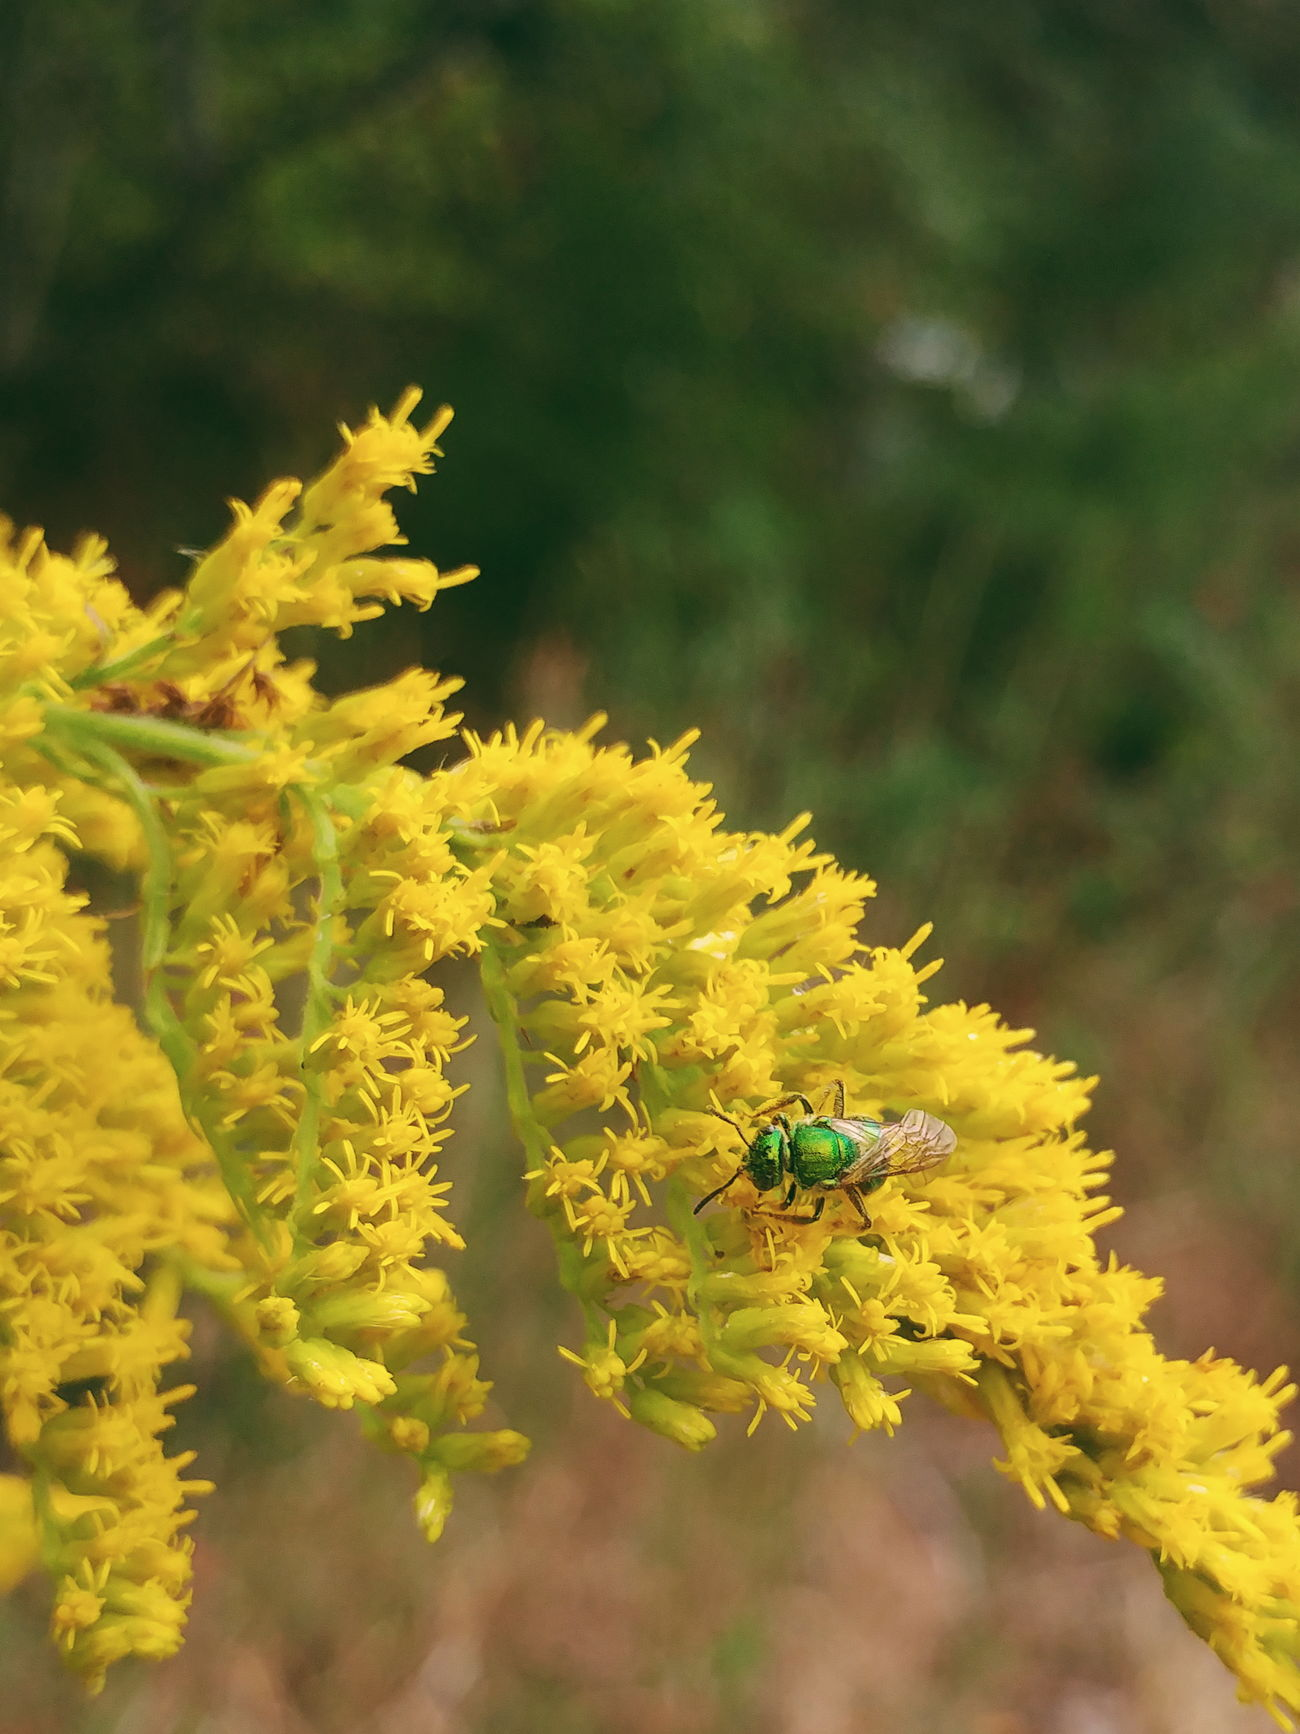 Animal Themes Animals In The Wild Beauty In Nature Bee Botany Bug Close-up Flower Focus On Foreground Freshness Goldenrod Green Insect Nature One Animal Pollination Wildlife Yellow